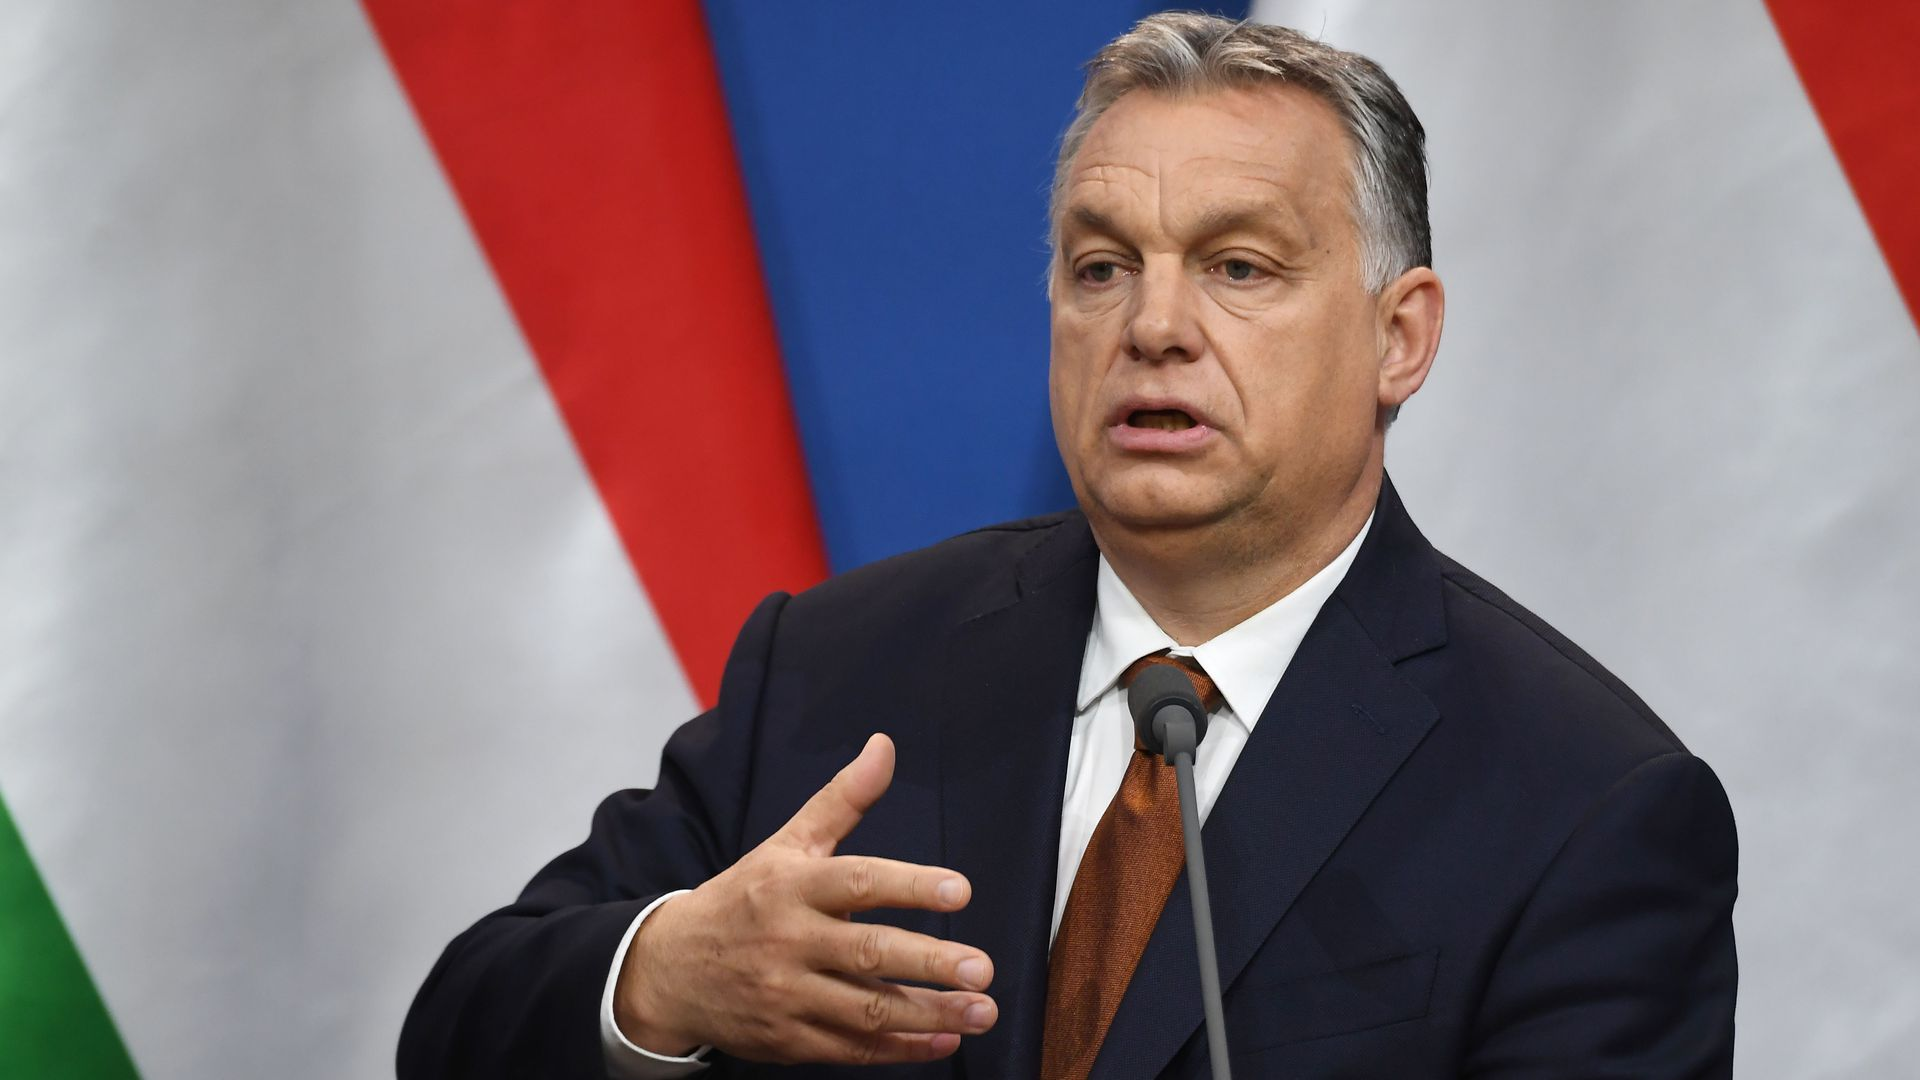 Viktor Orban speaking